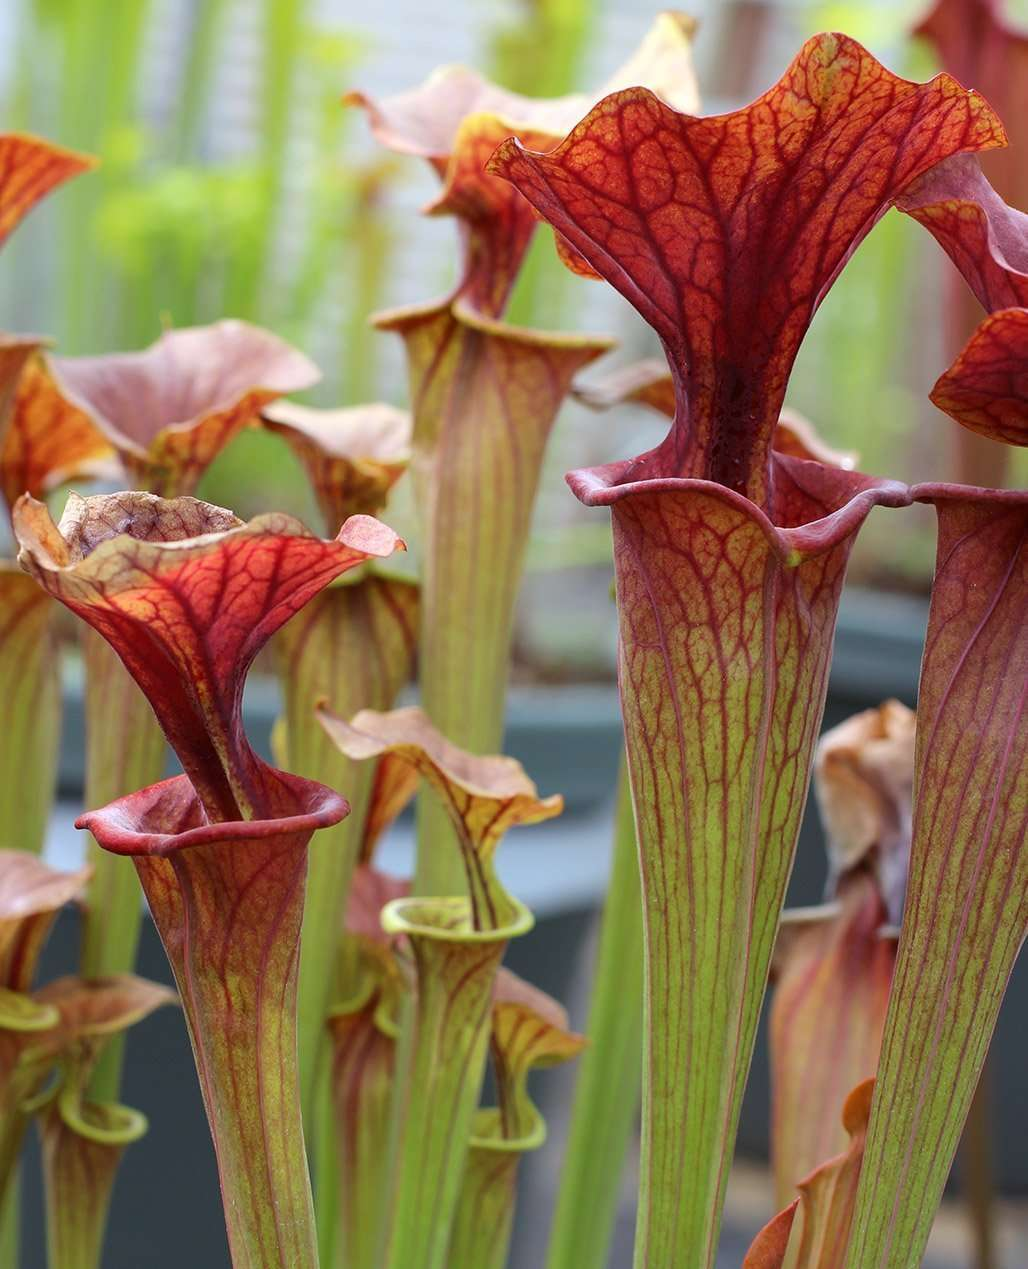 North American Pitcher Plant - Sarracenia